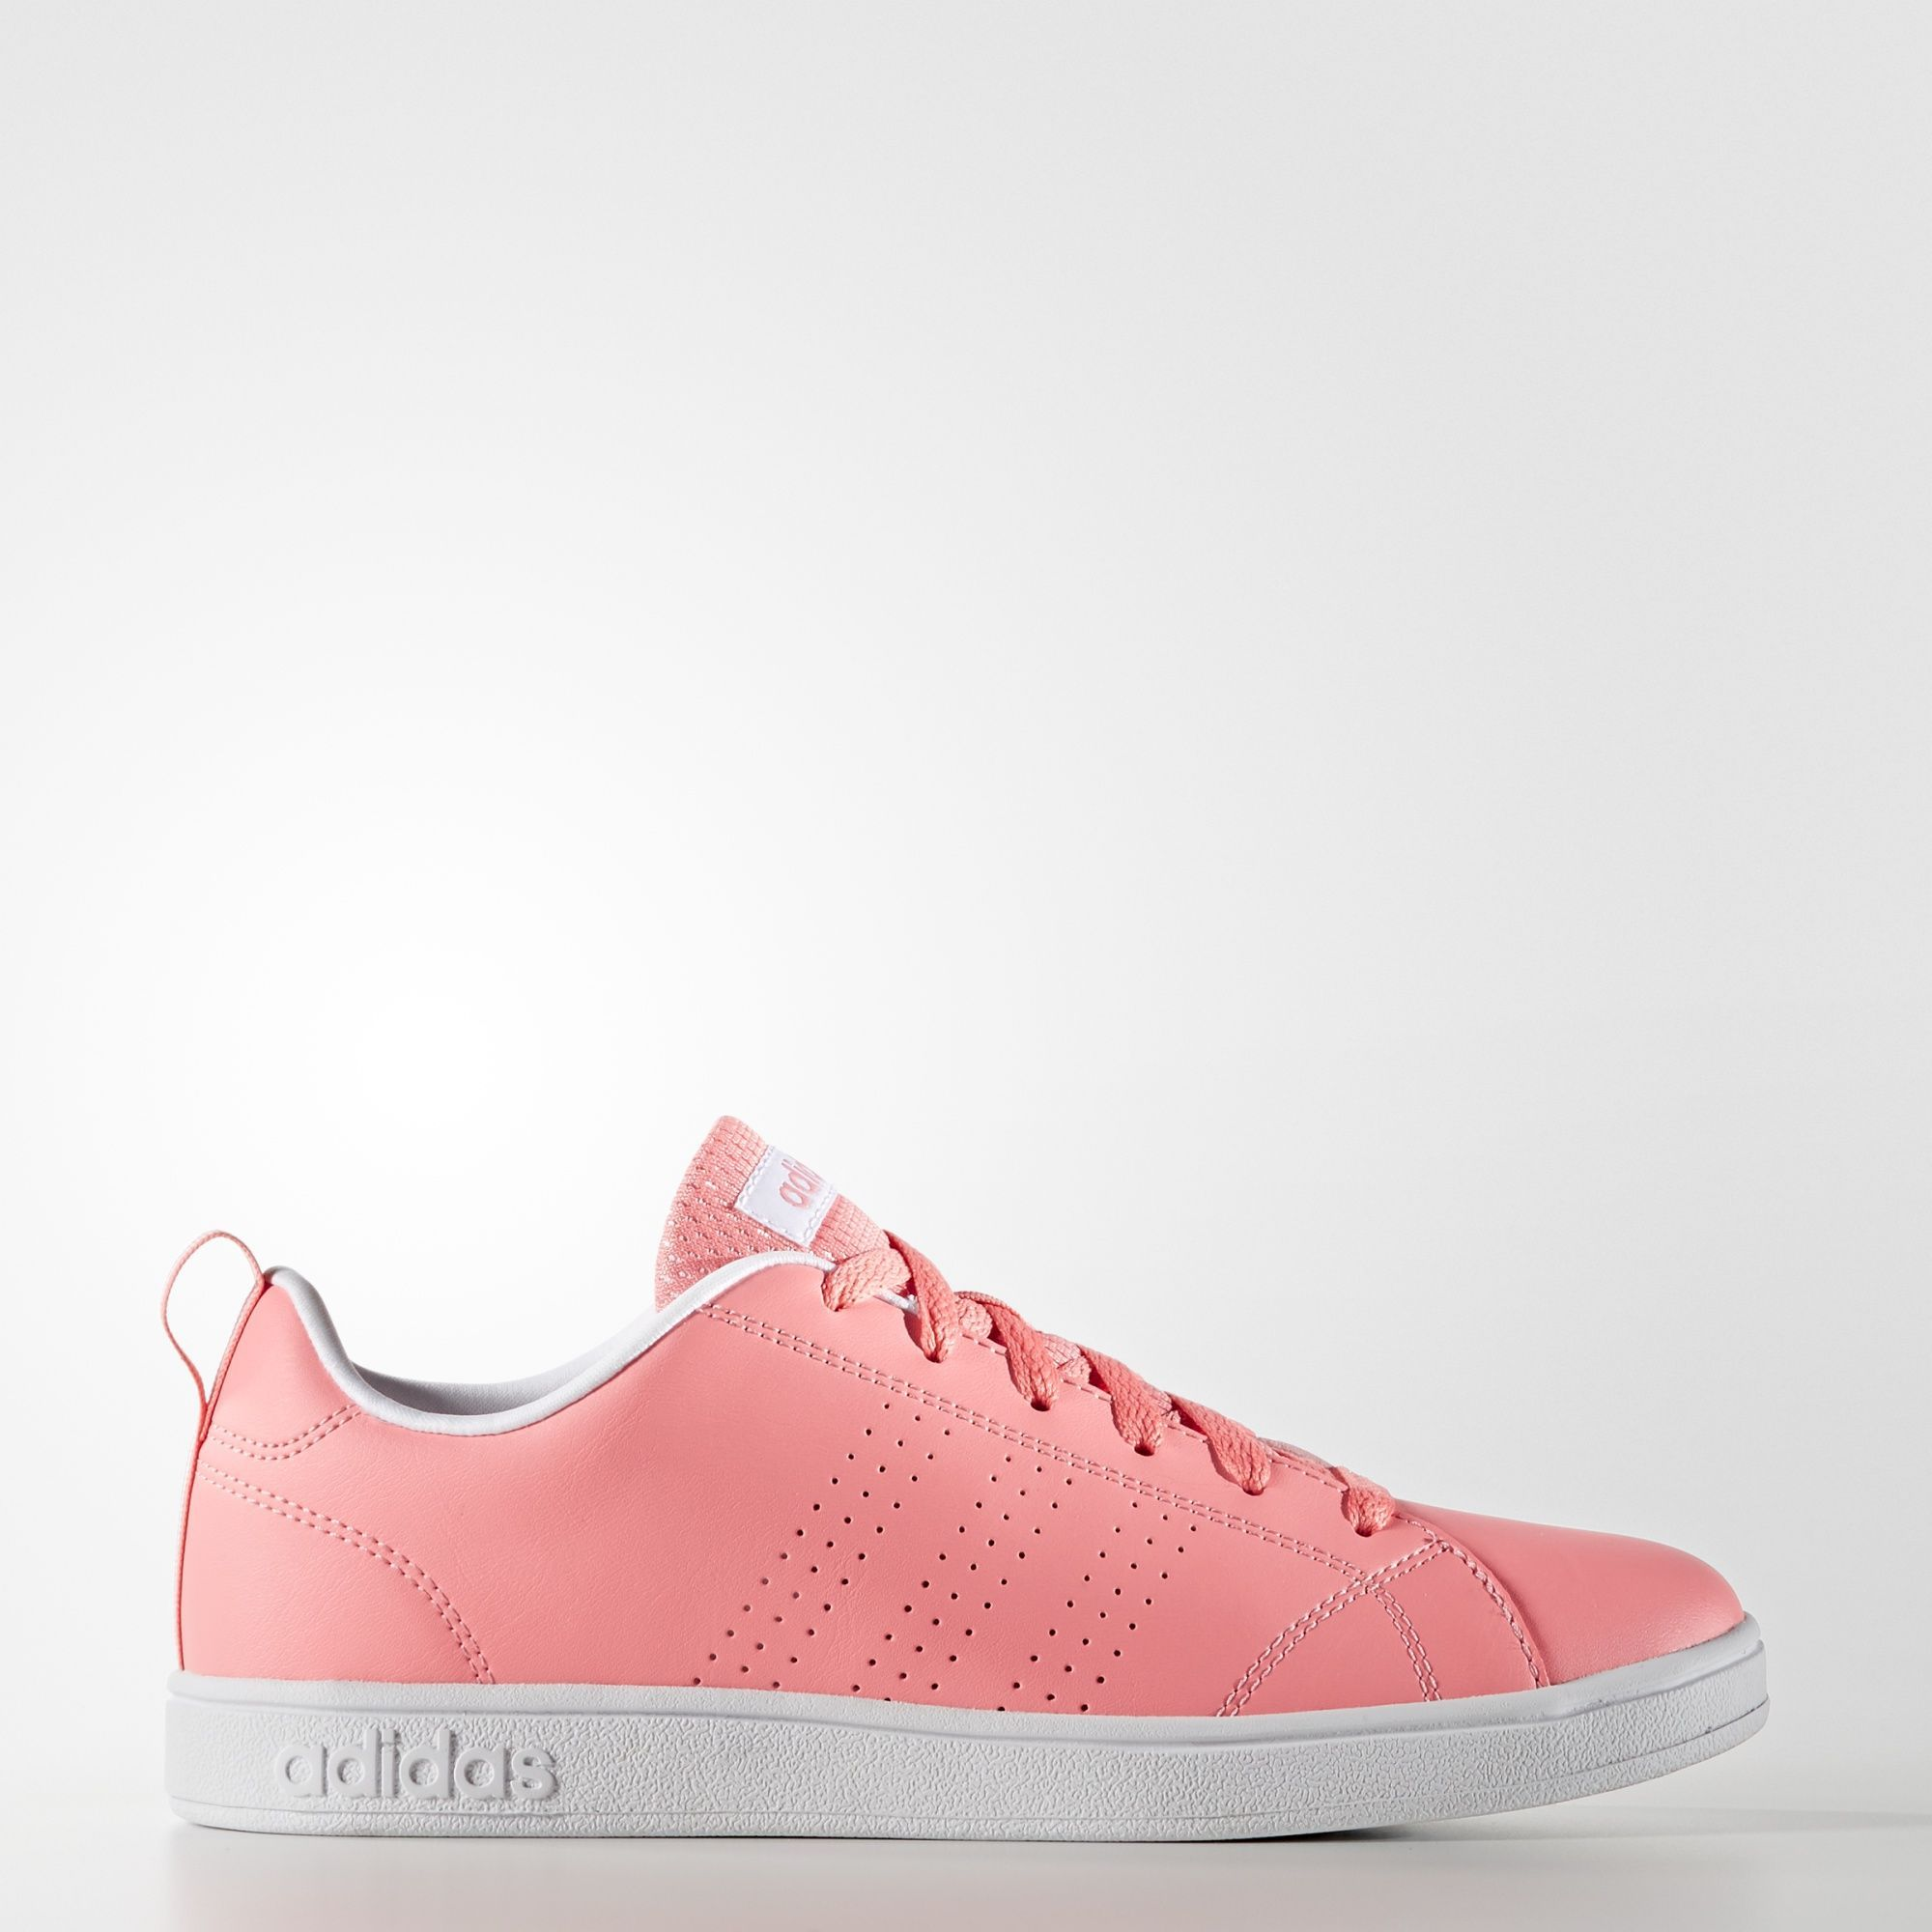 adidas - Advantage Clean Shoes. Peach AdidasPink ...